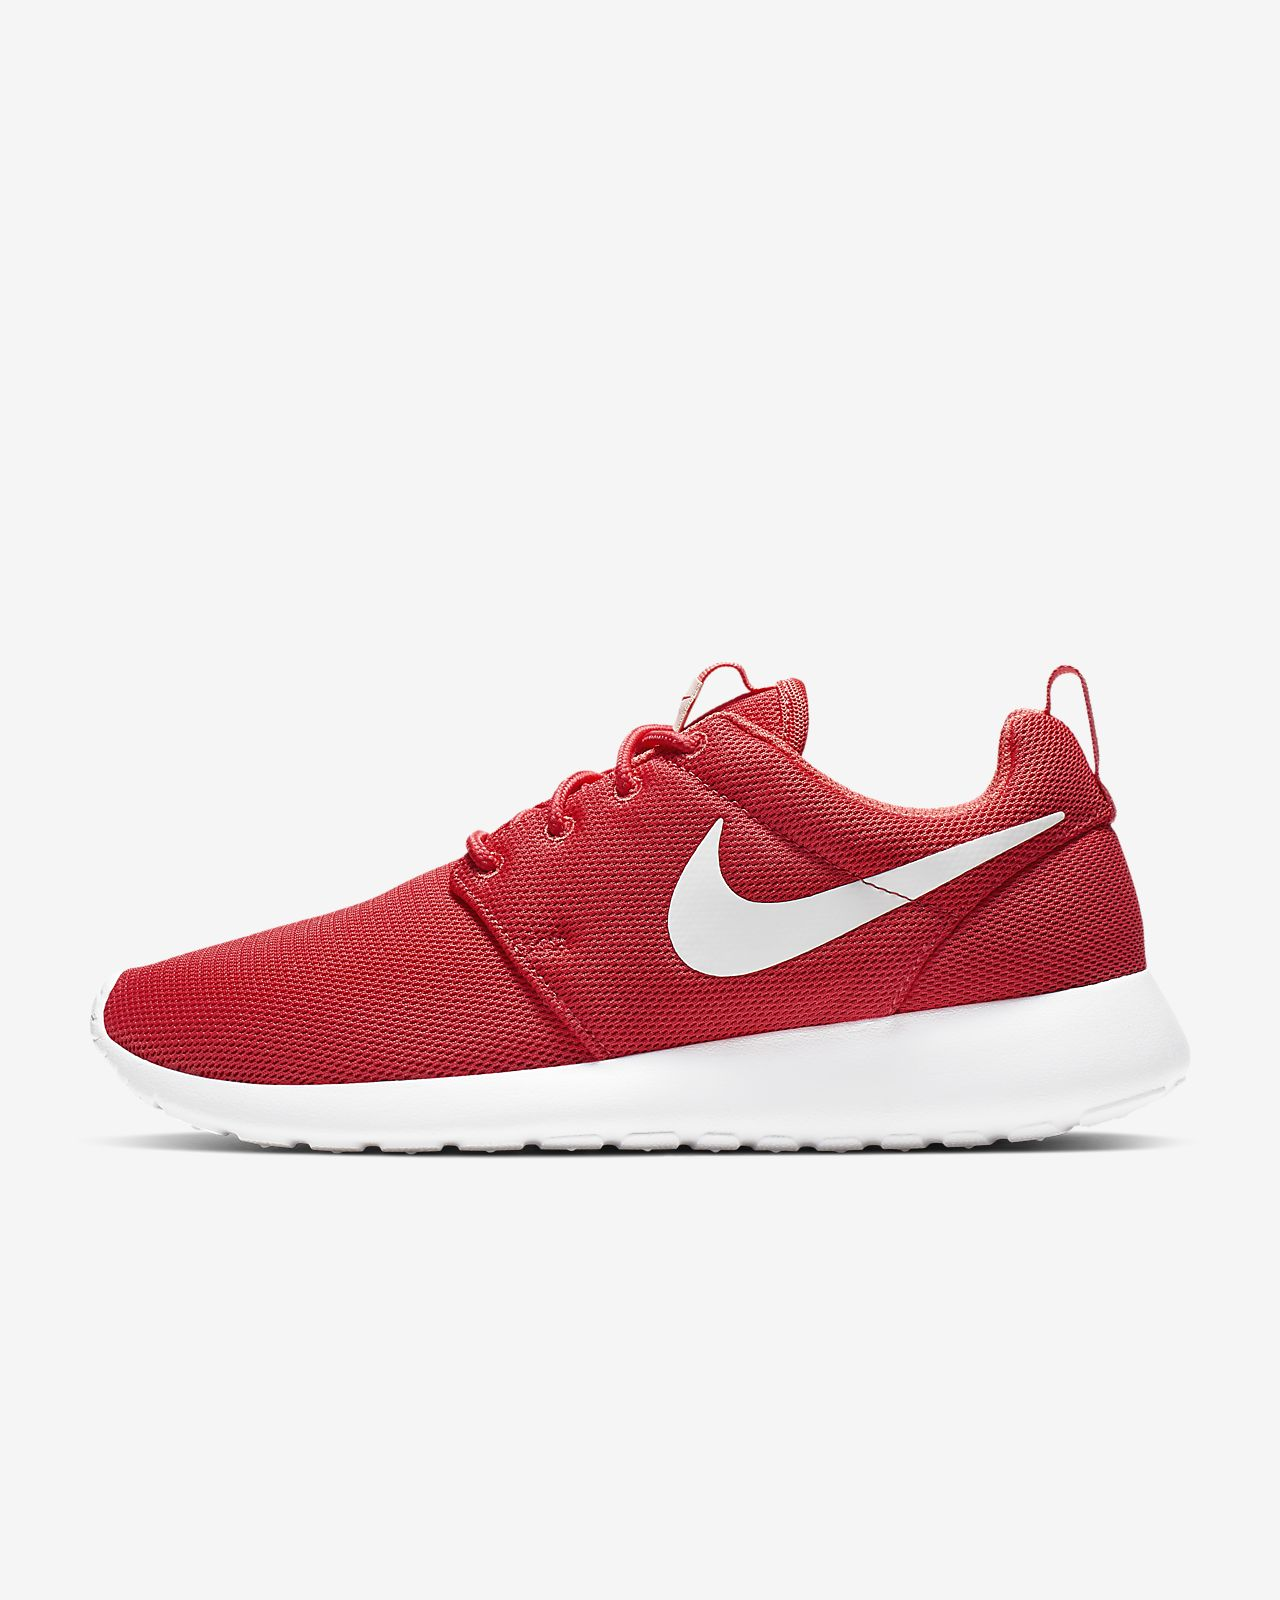 premium selection 58a26 205d5 ... Nike Roshe One Women s Shoe